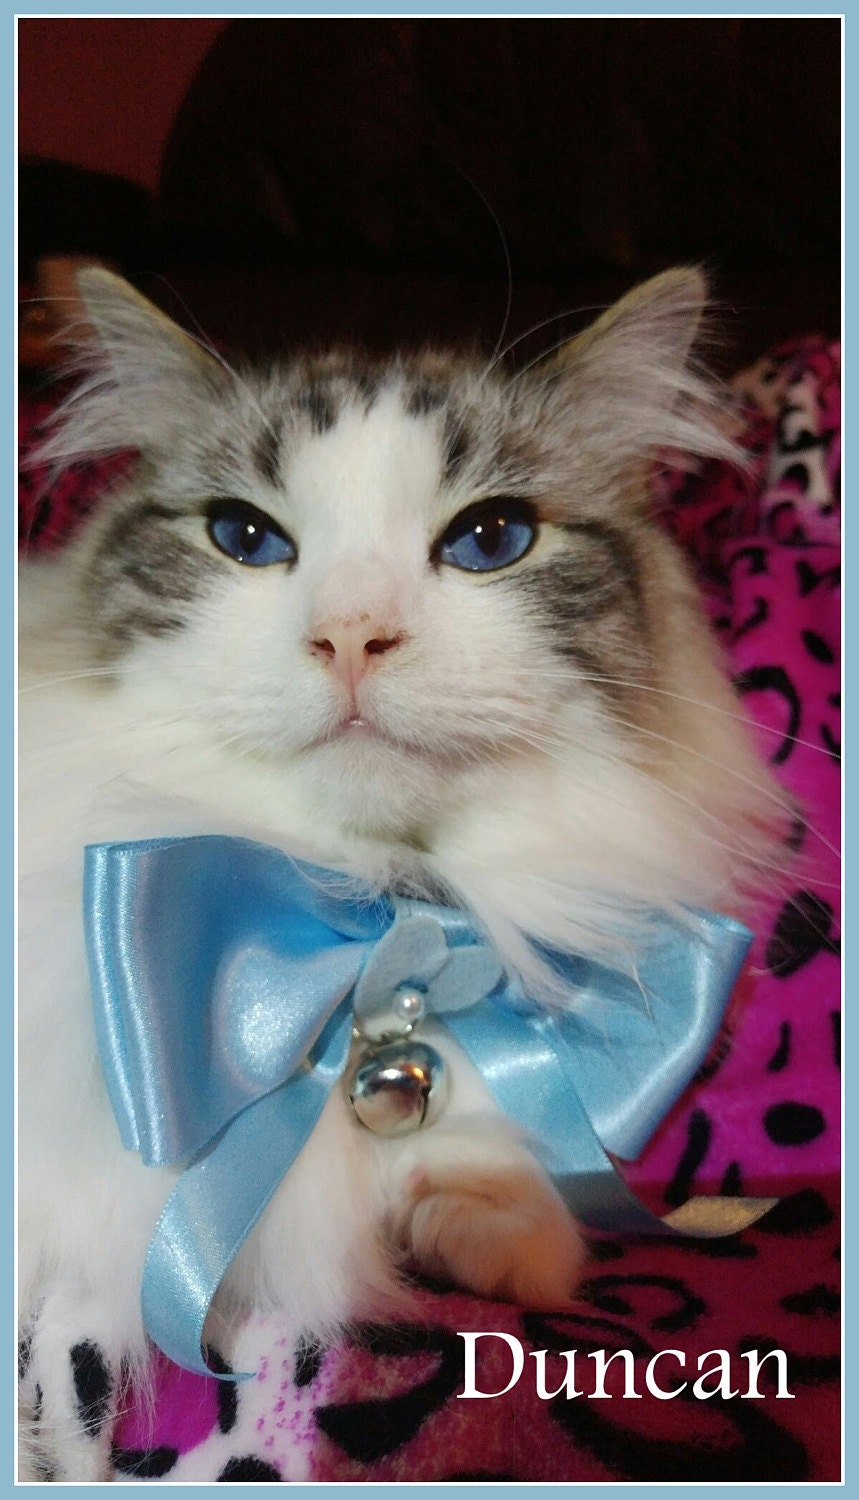 Duncan wearing his satin blue bow tie